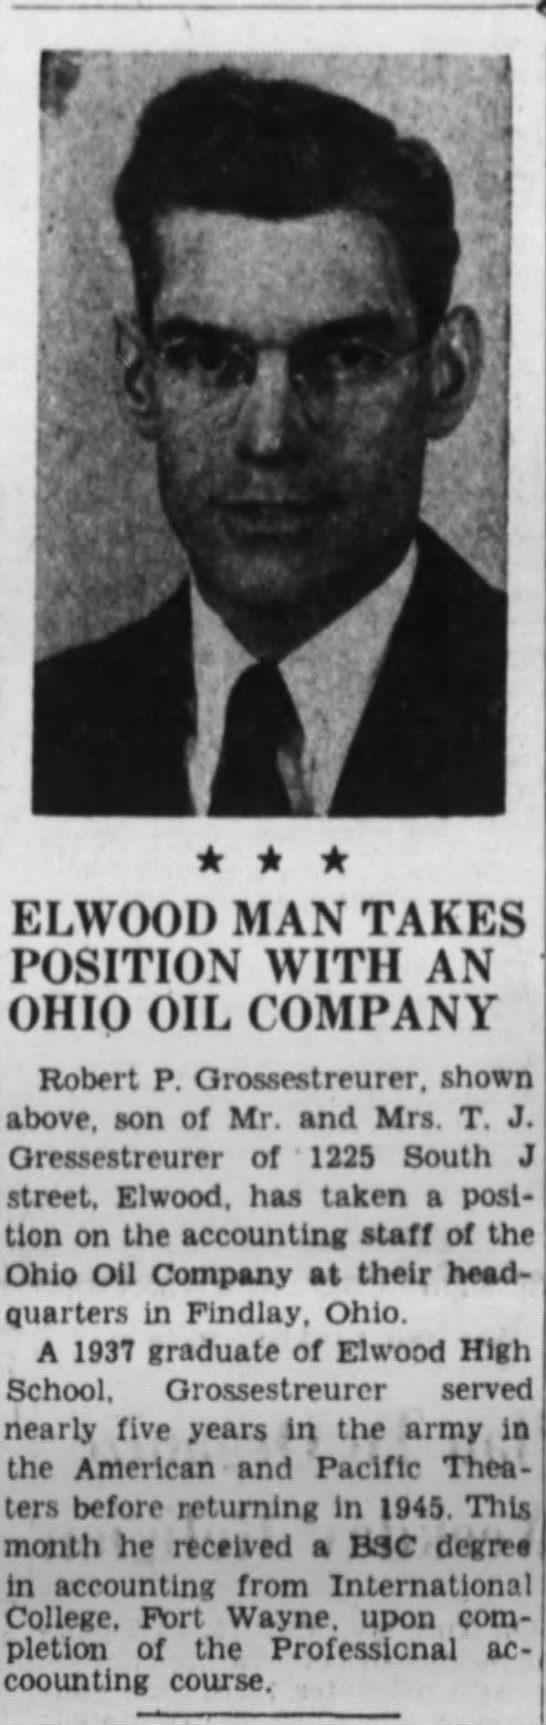 Robert P Grossestreuer takes a postion with the Ohio Oil Company, Findlay, Ohio -